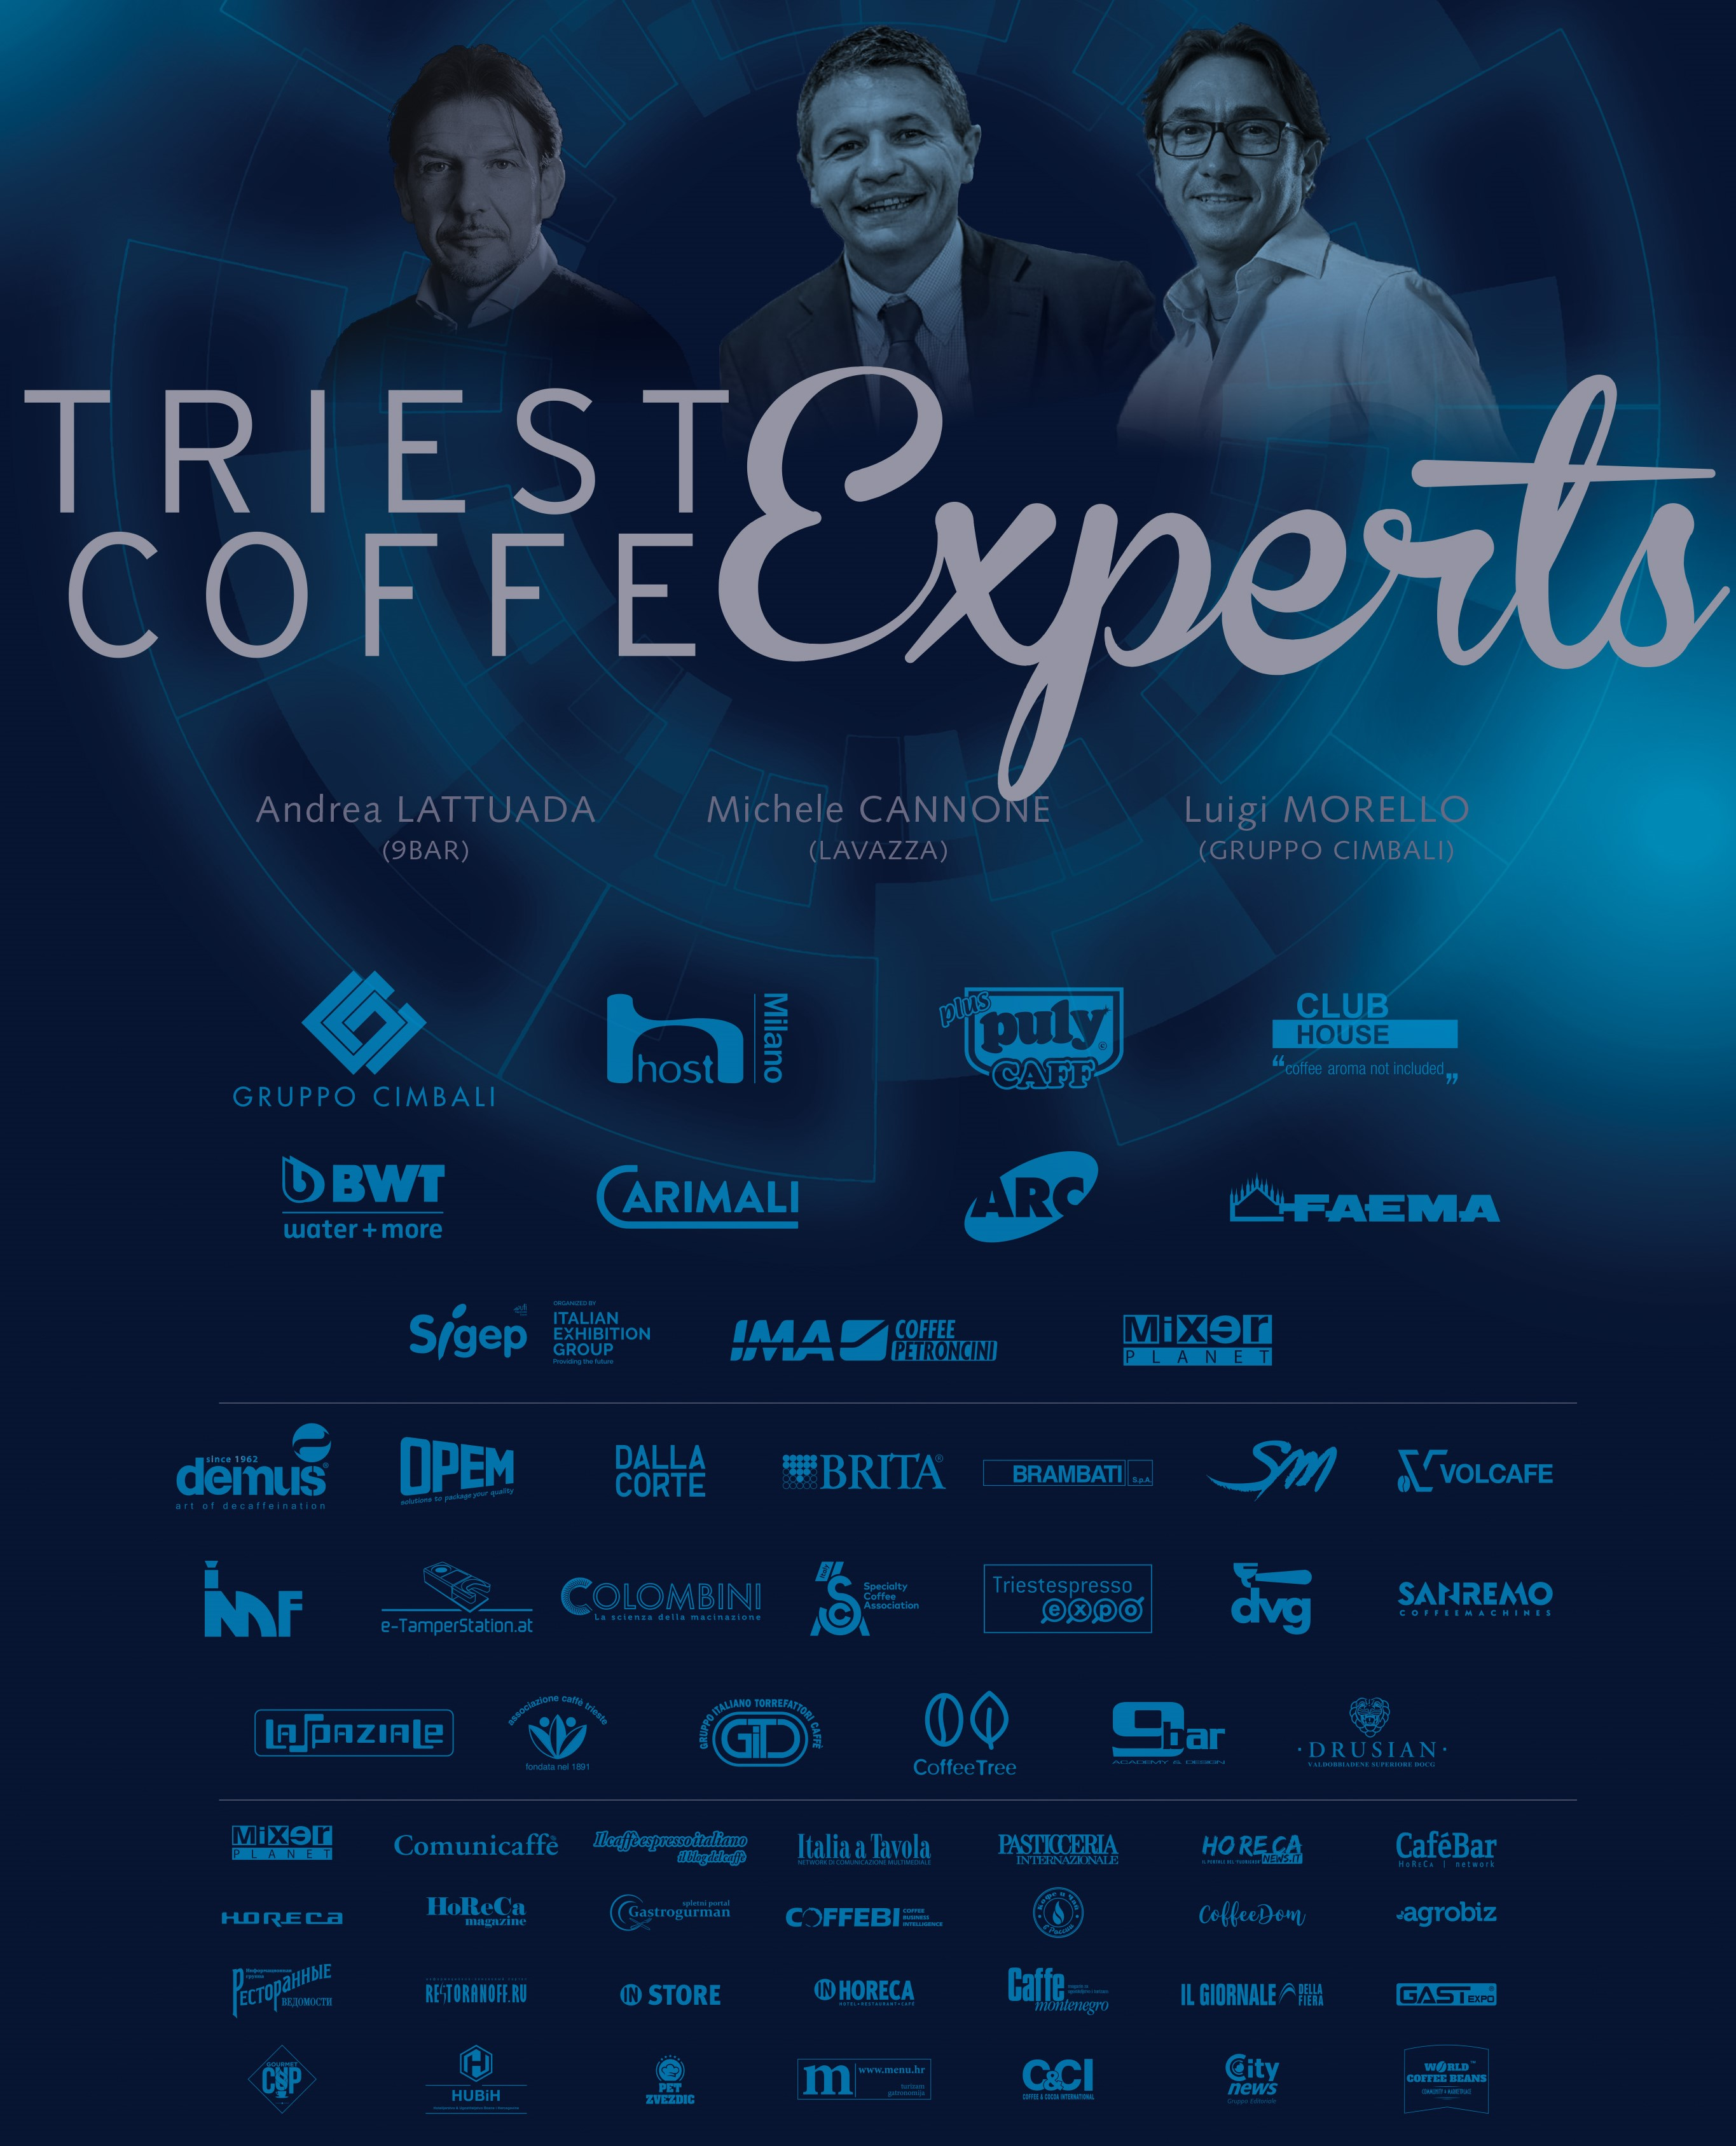 Trieste coffee Experts 2019